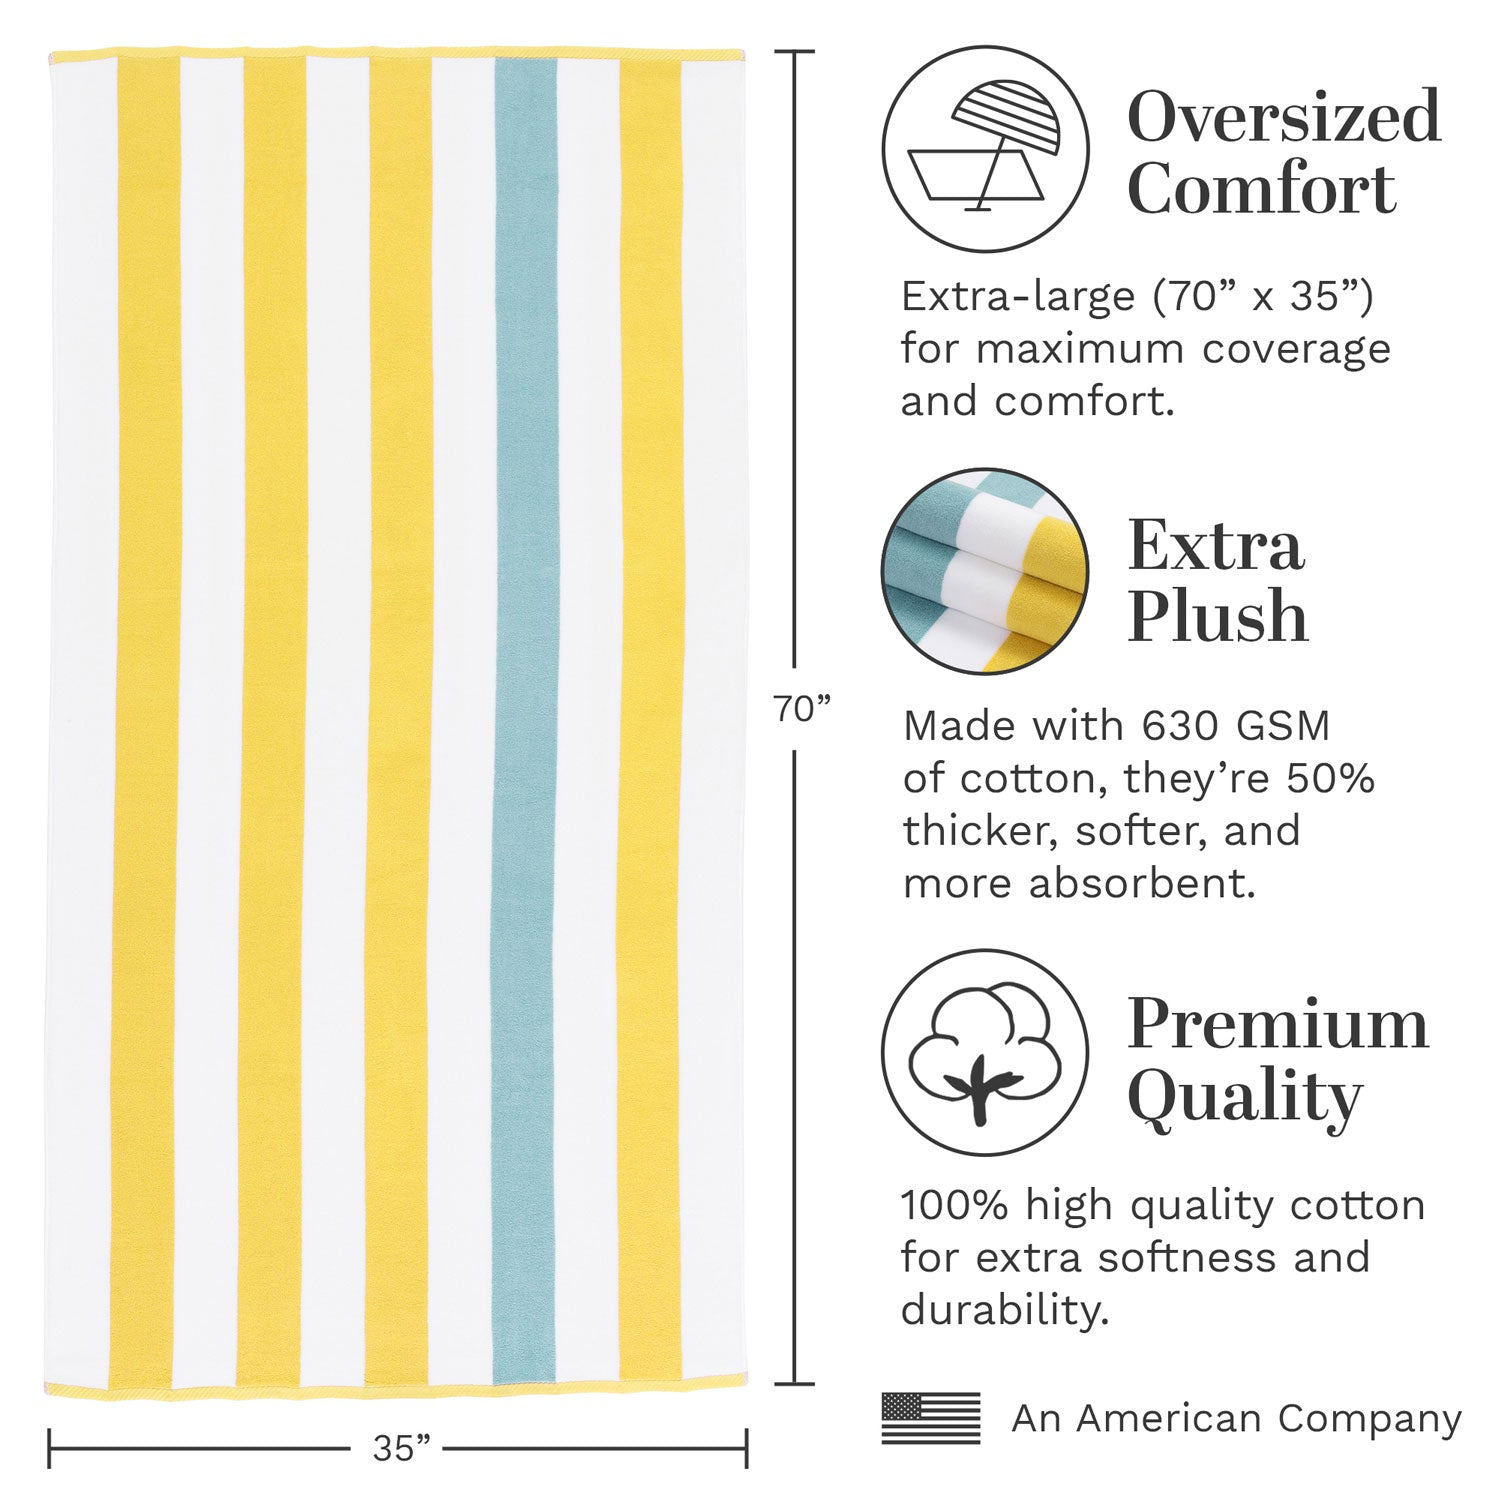 Infographic of our yellow and teal cabana beach towel highlighting that it's extra plush, premium quality, and oversized.